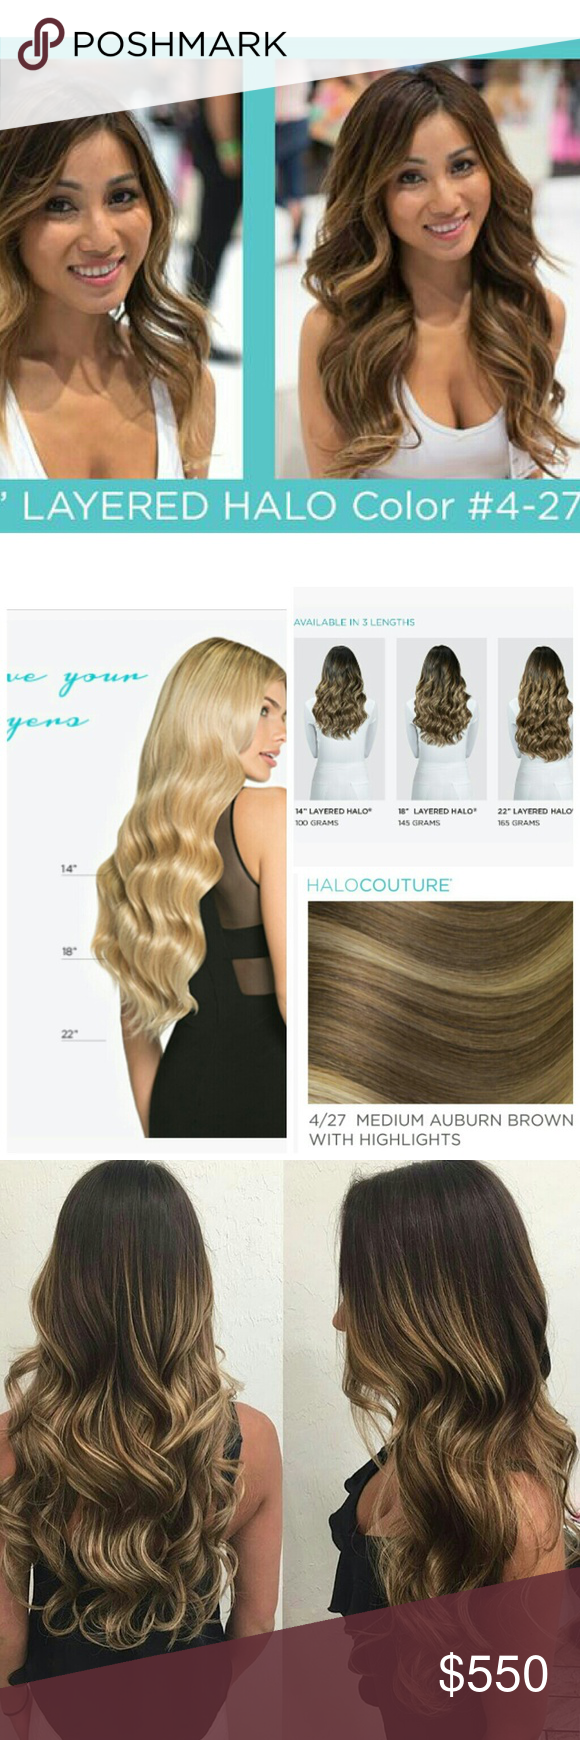 1 Day Sale Halo Couture 22 Inch Layered Extensions Pinterest